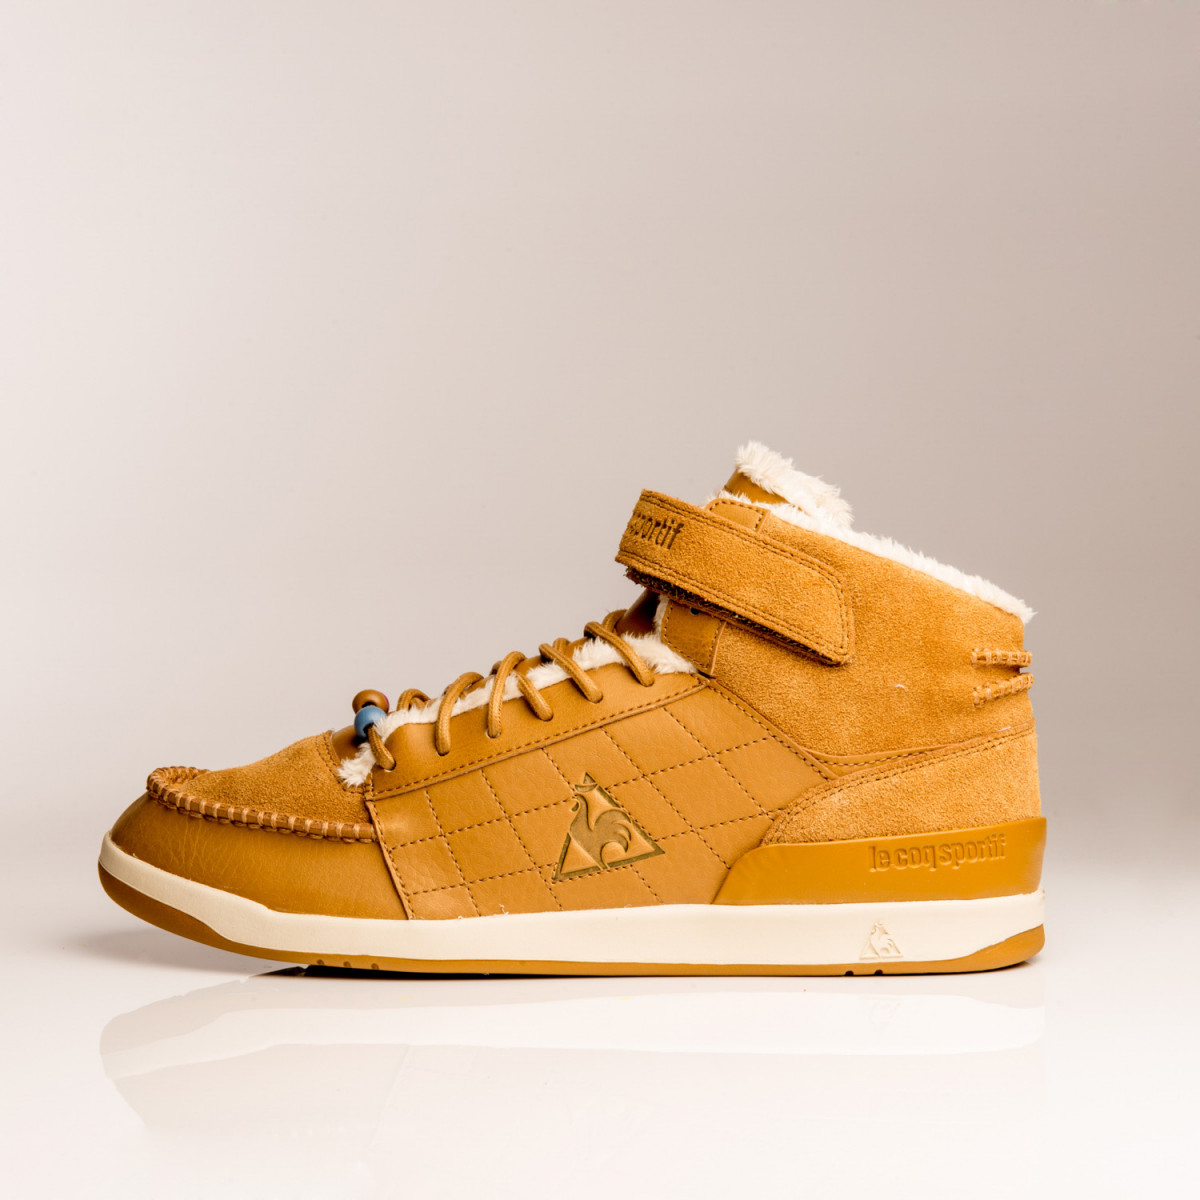 Zapatillas Le Coq Sportif Diamond Lammy